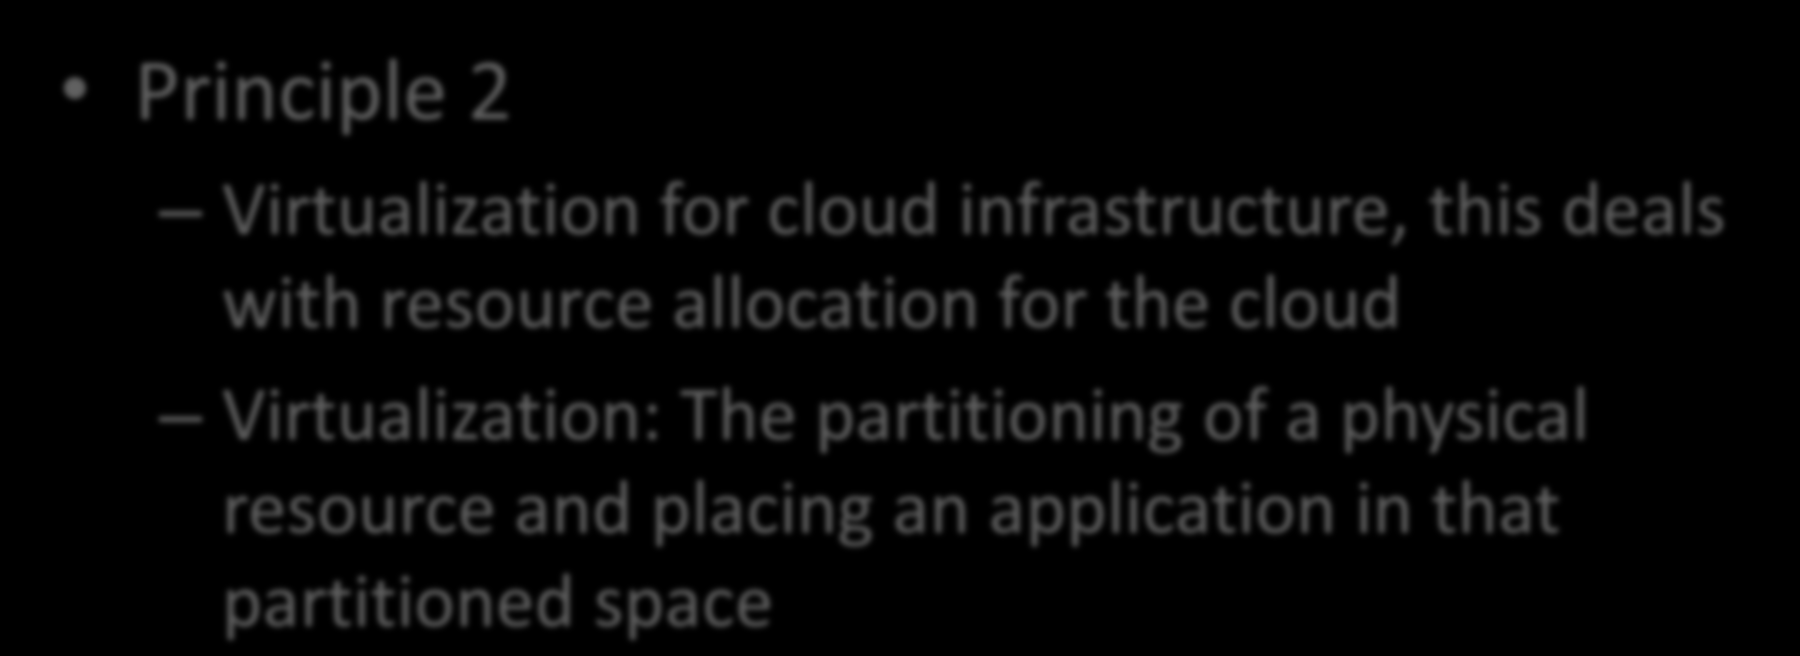 CCOA 7 Principles Principle 2 Virtualization for cloud infrastructure, this deals with resource allocation for the